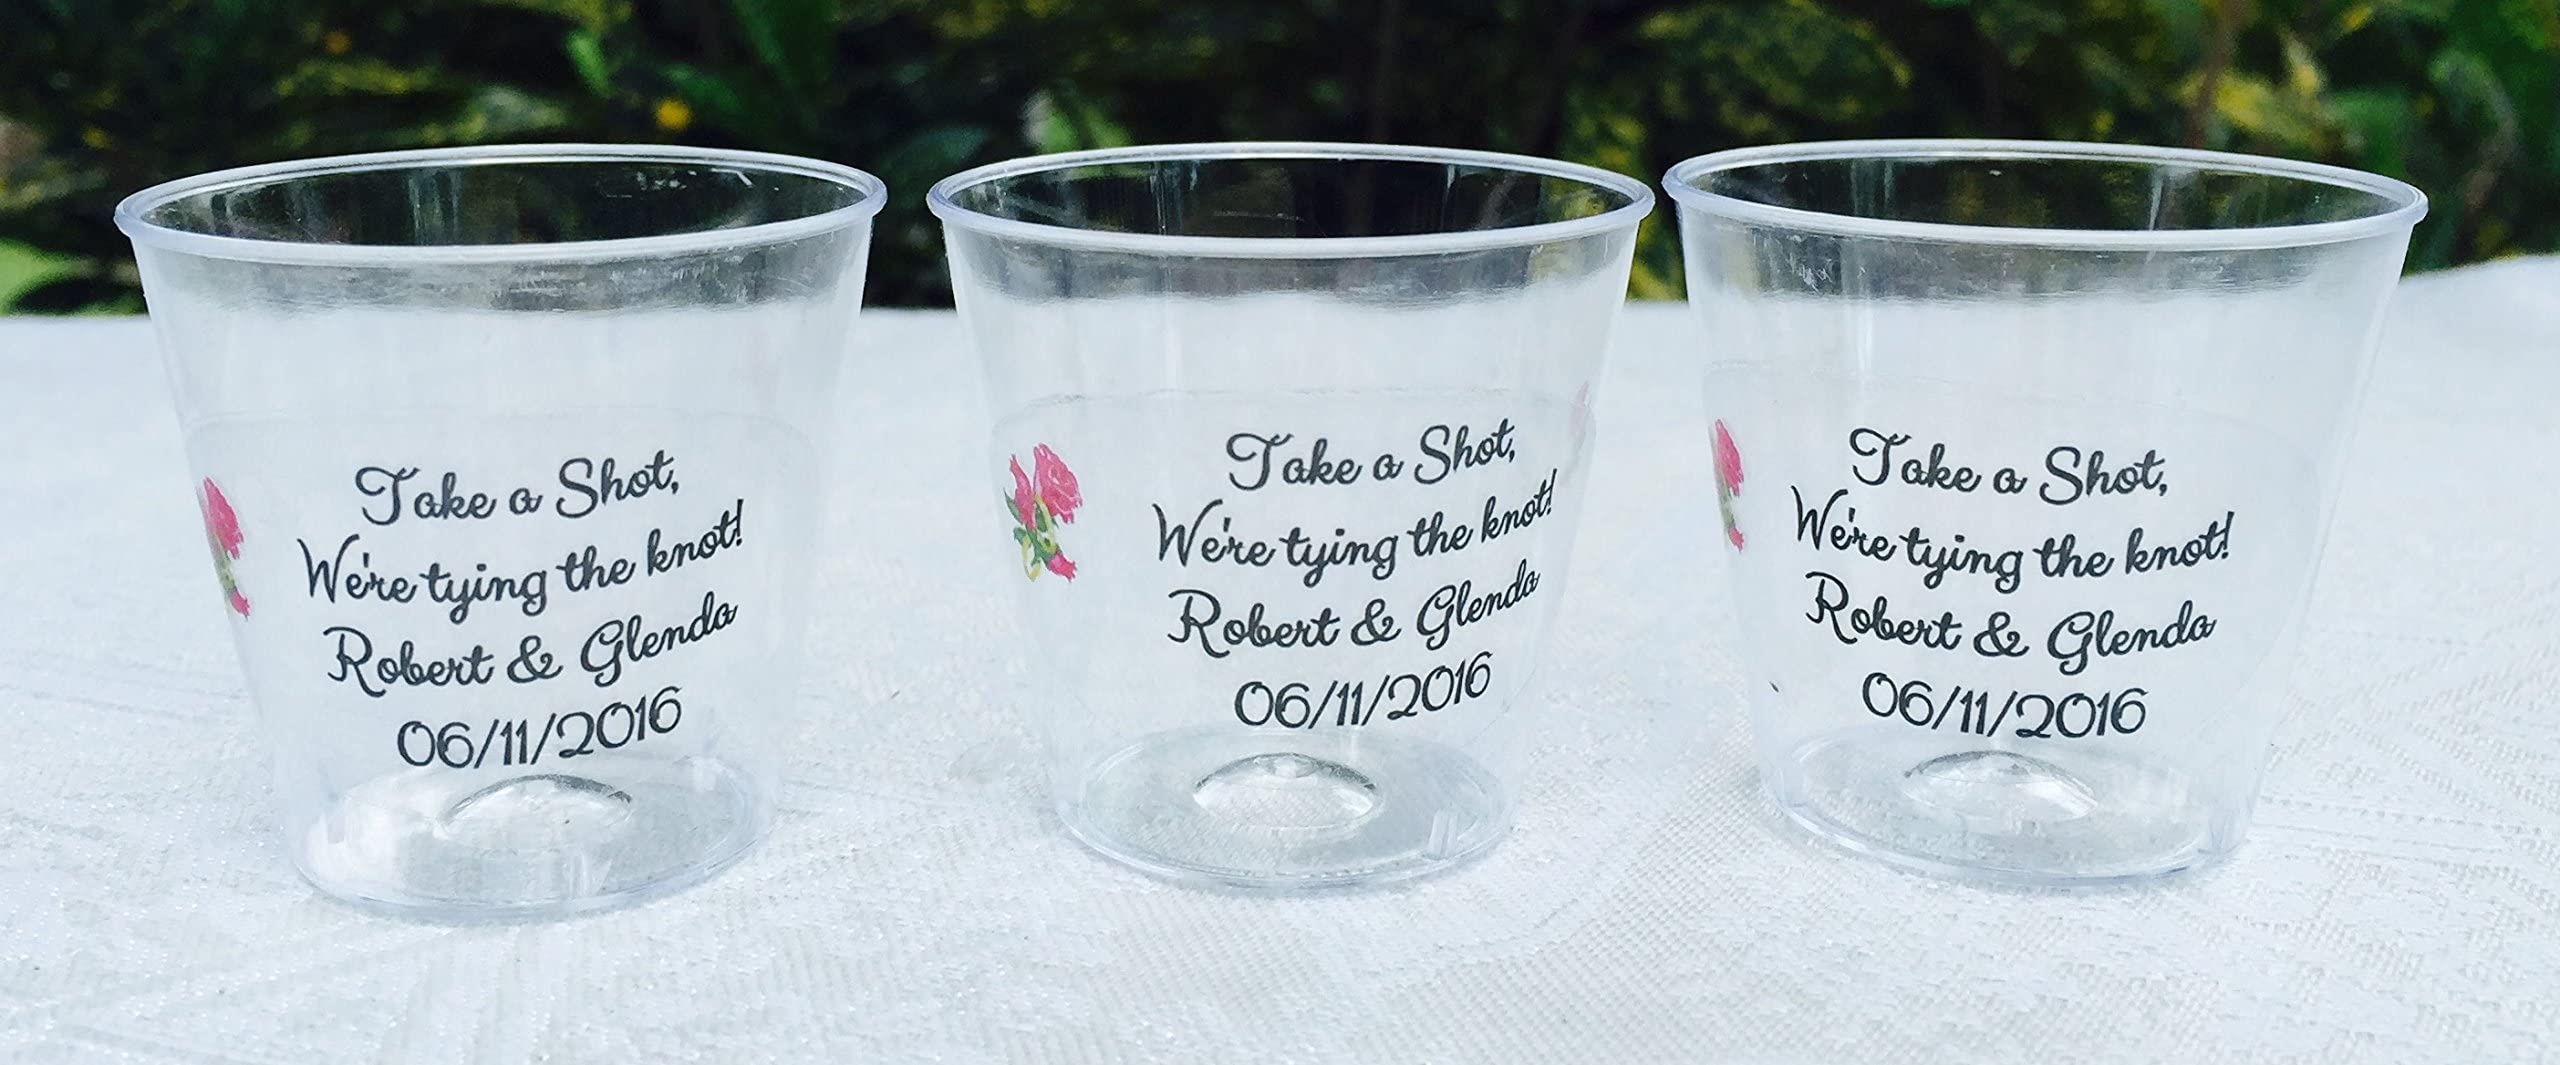 Custom Cups Love Laughter and Happily Ever After Color Changing Cups Wedding Cups Wedding Favors 1456 Mood Cups Monogrammed Mood Cups